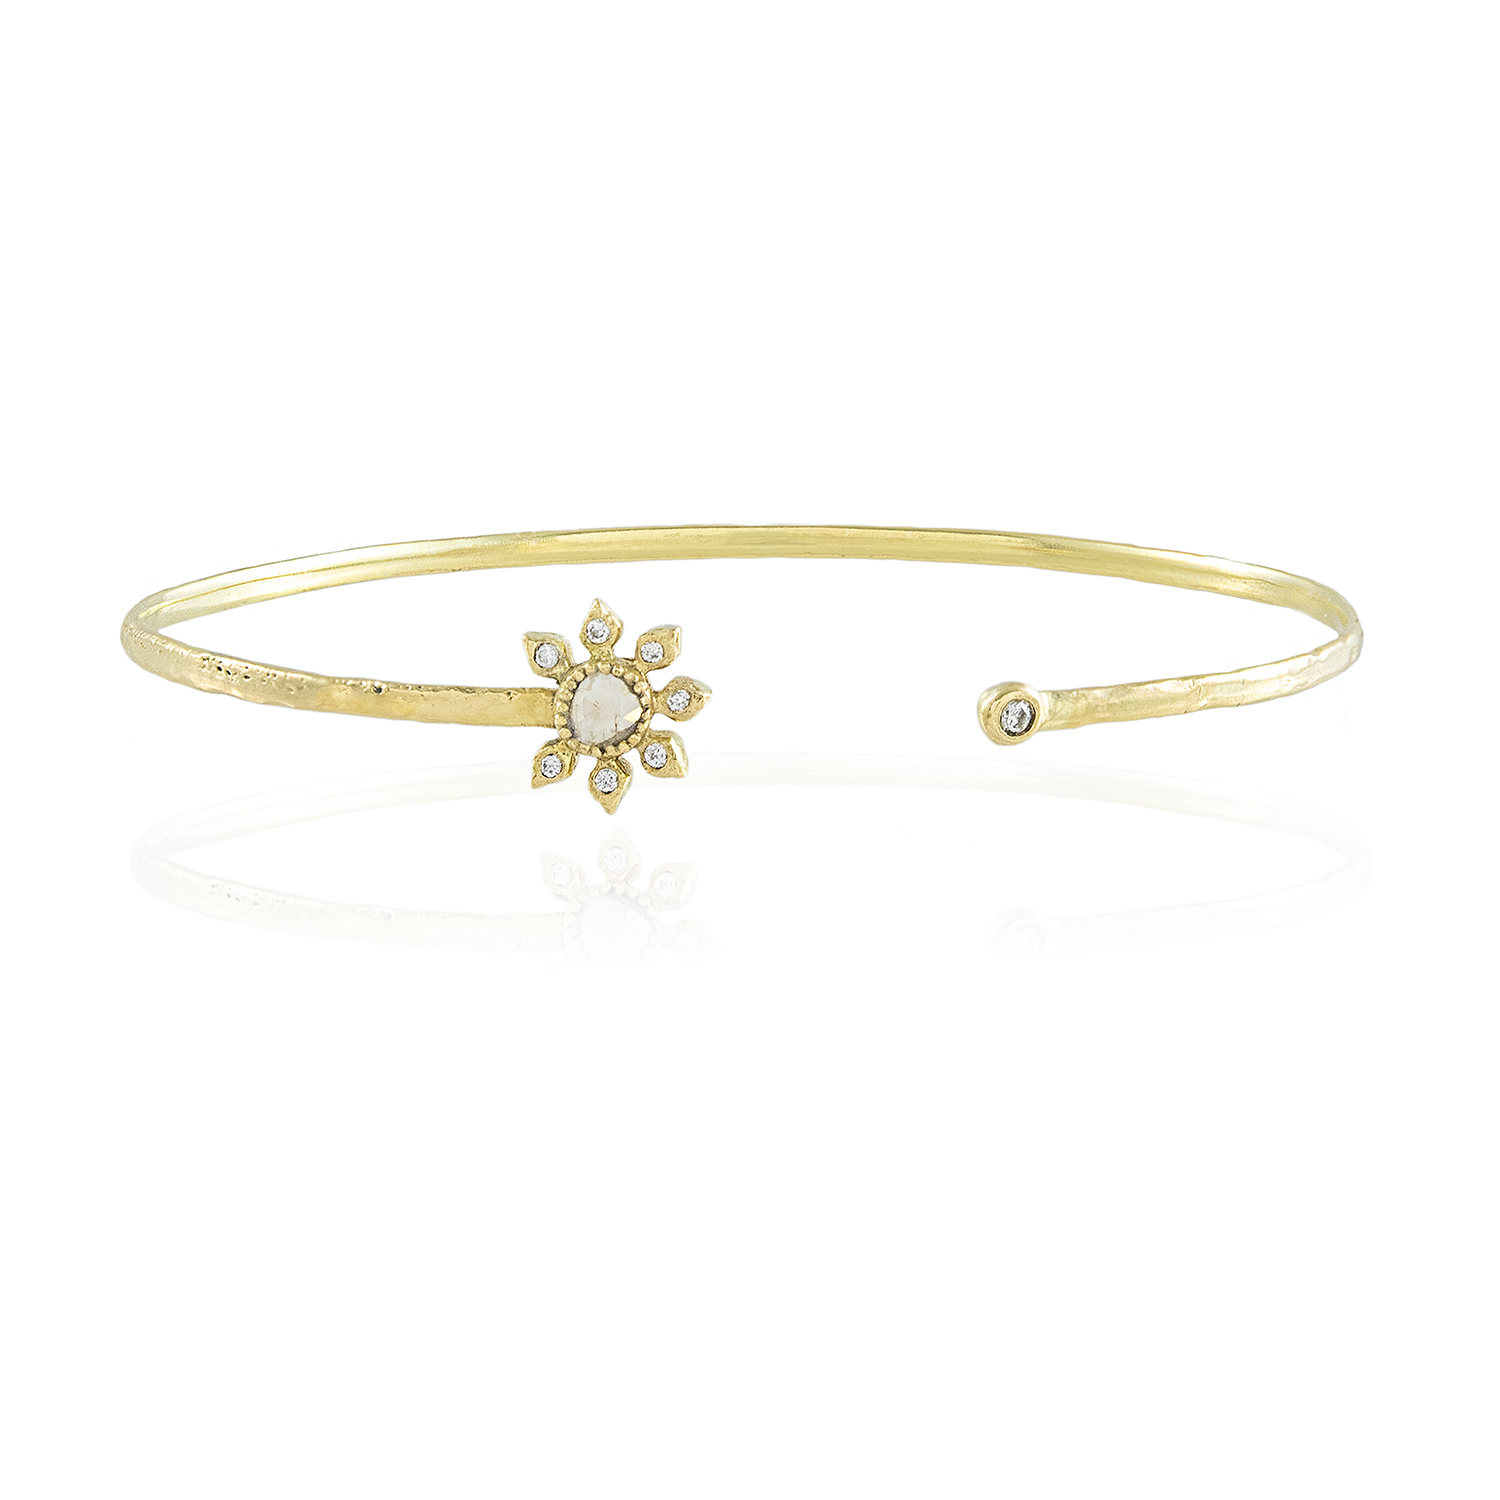 Natalie Perry, Diamond Flower Bangle